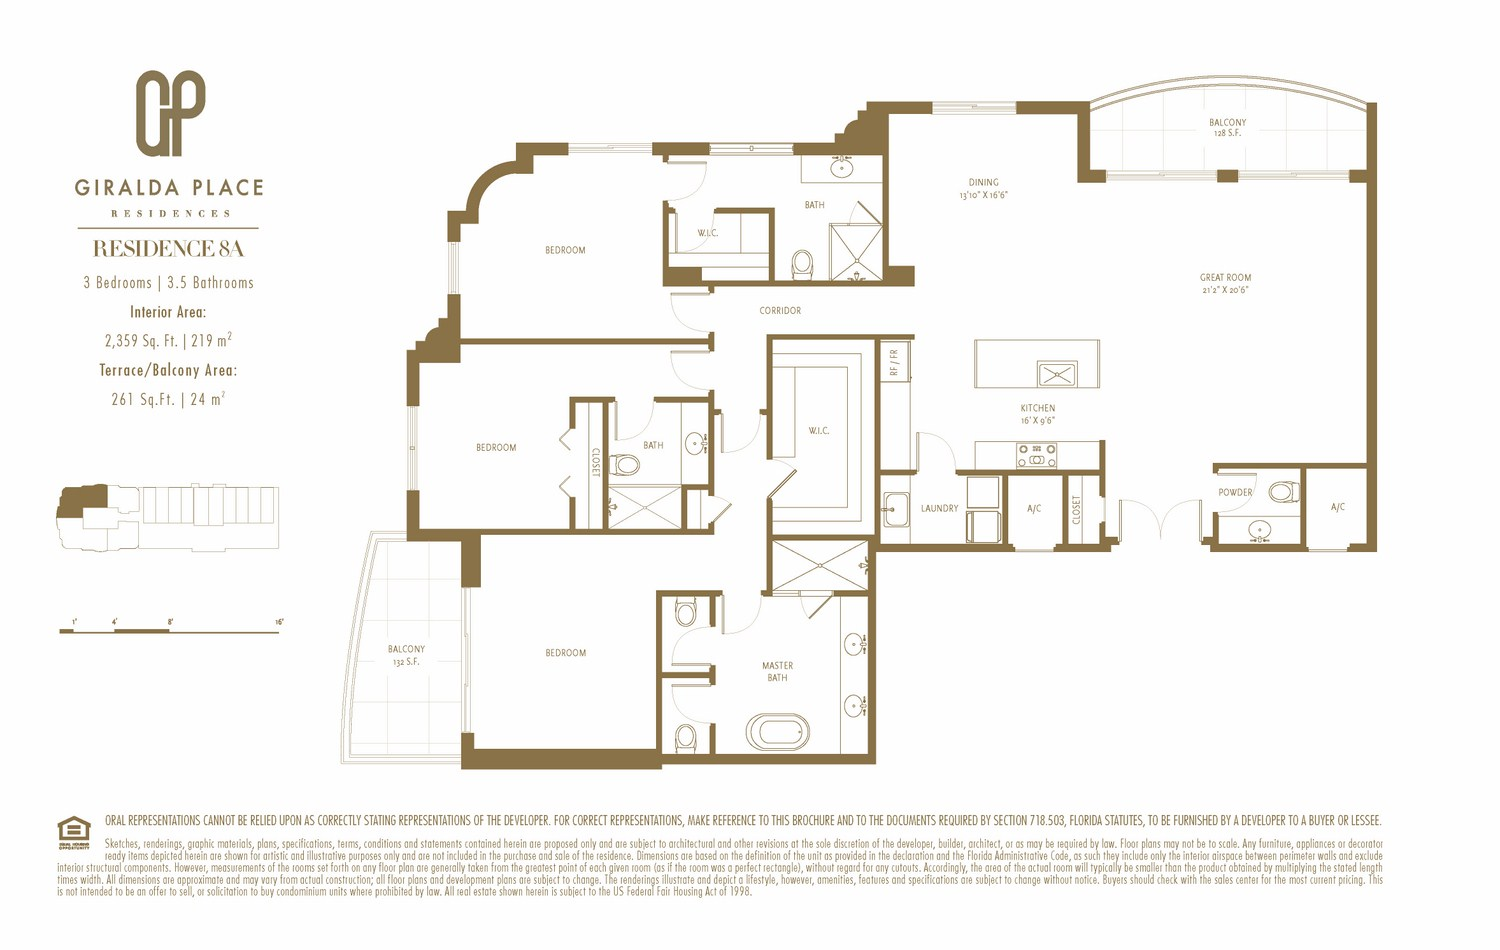 Giralda Place - Floorplan 10